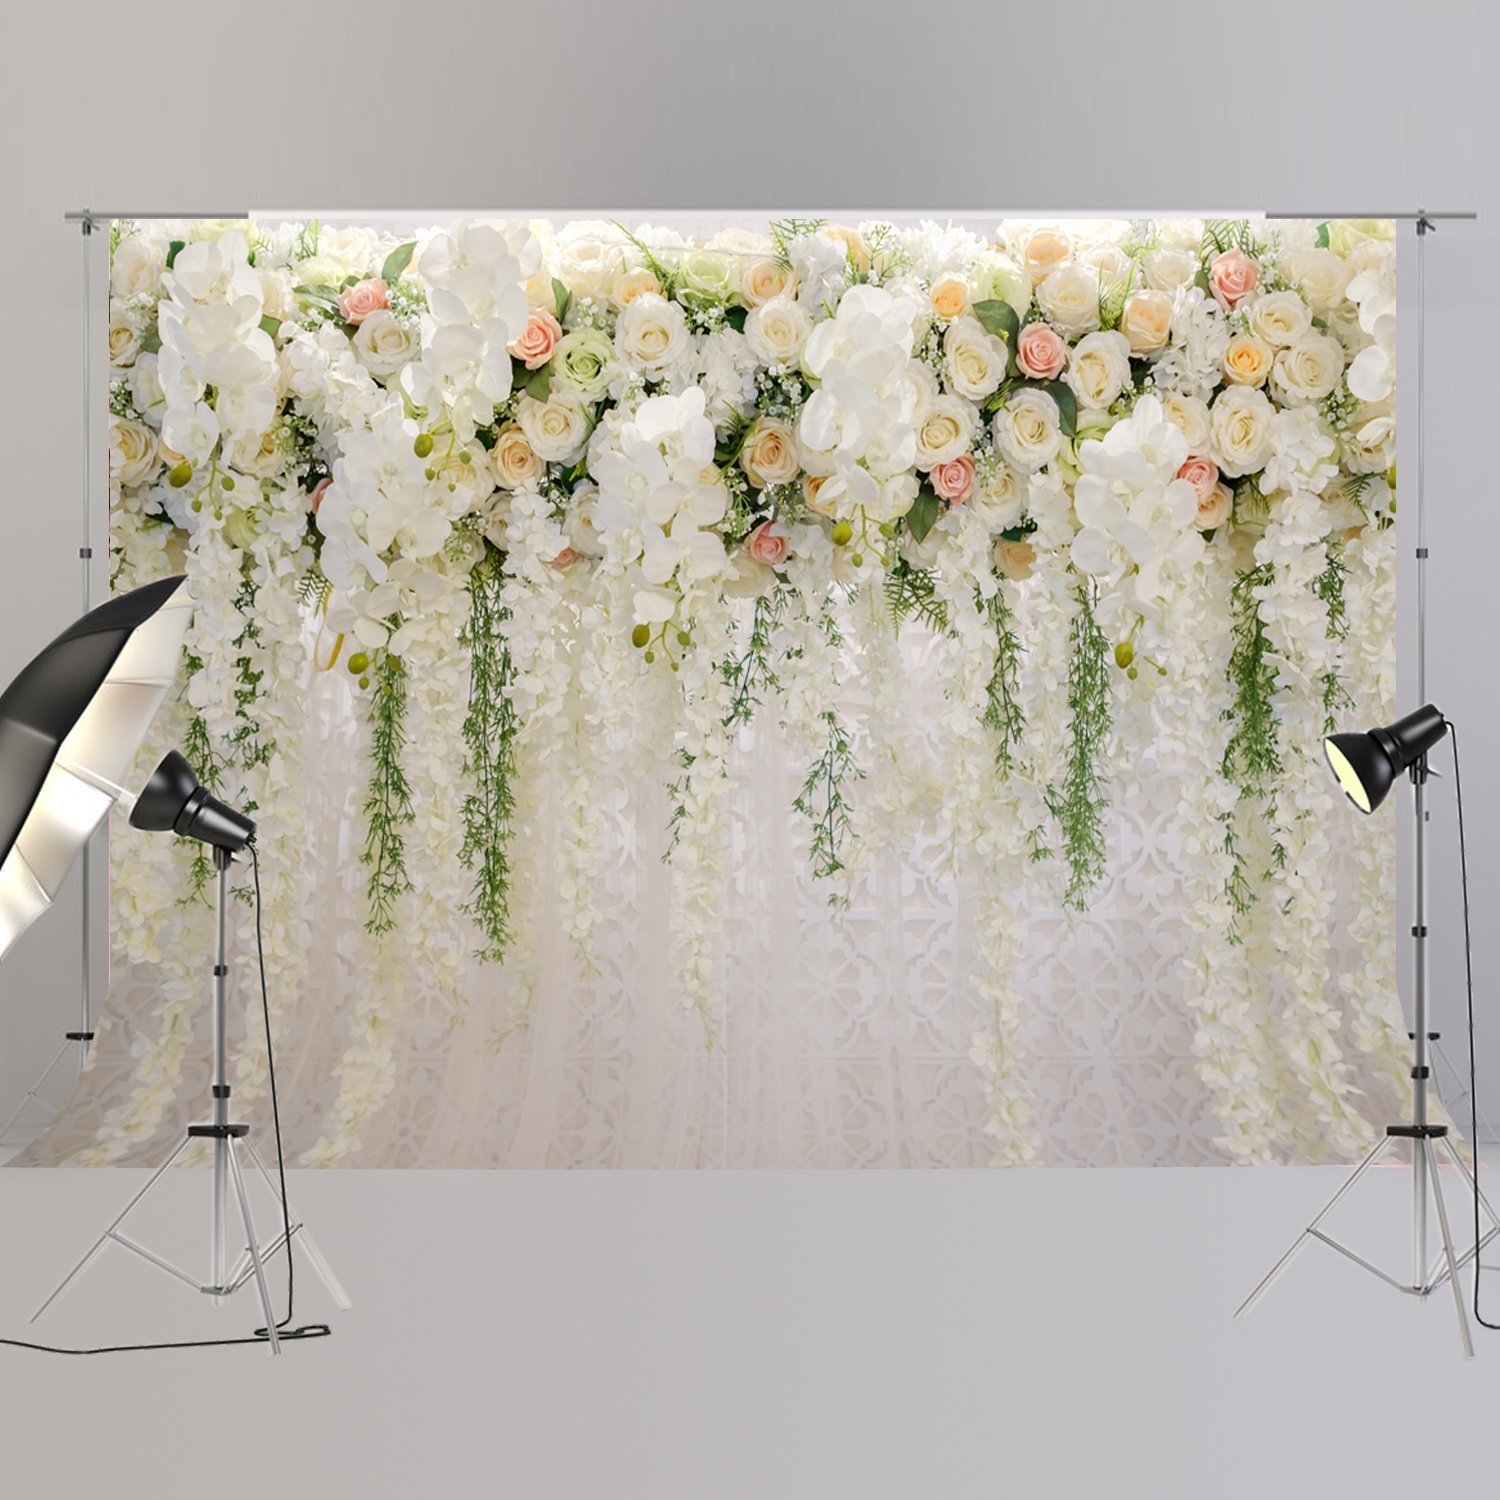 Wedding Backdrop Bridal Shower Large Background White Floral Wister Design  Decoration Photography Booth XT 6749|Background| - AliExpress